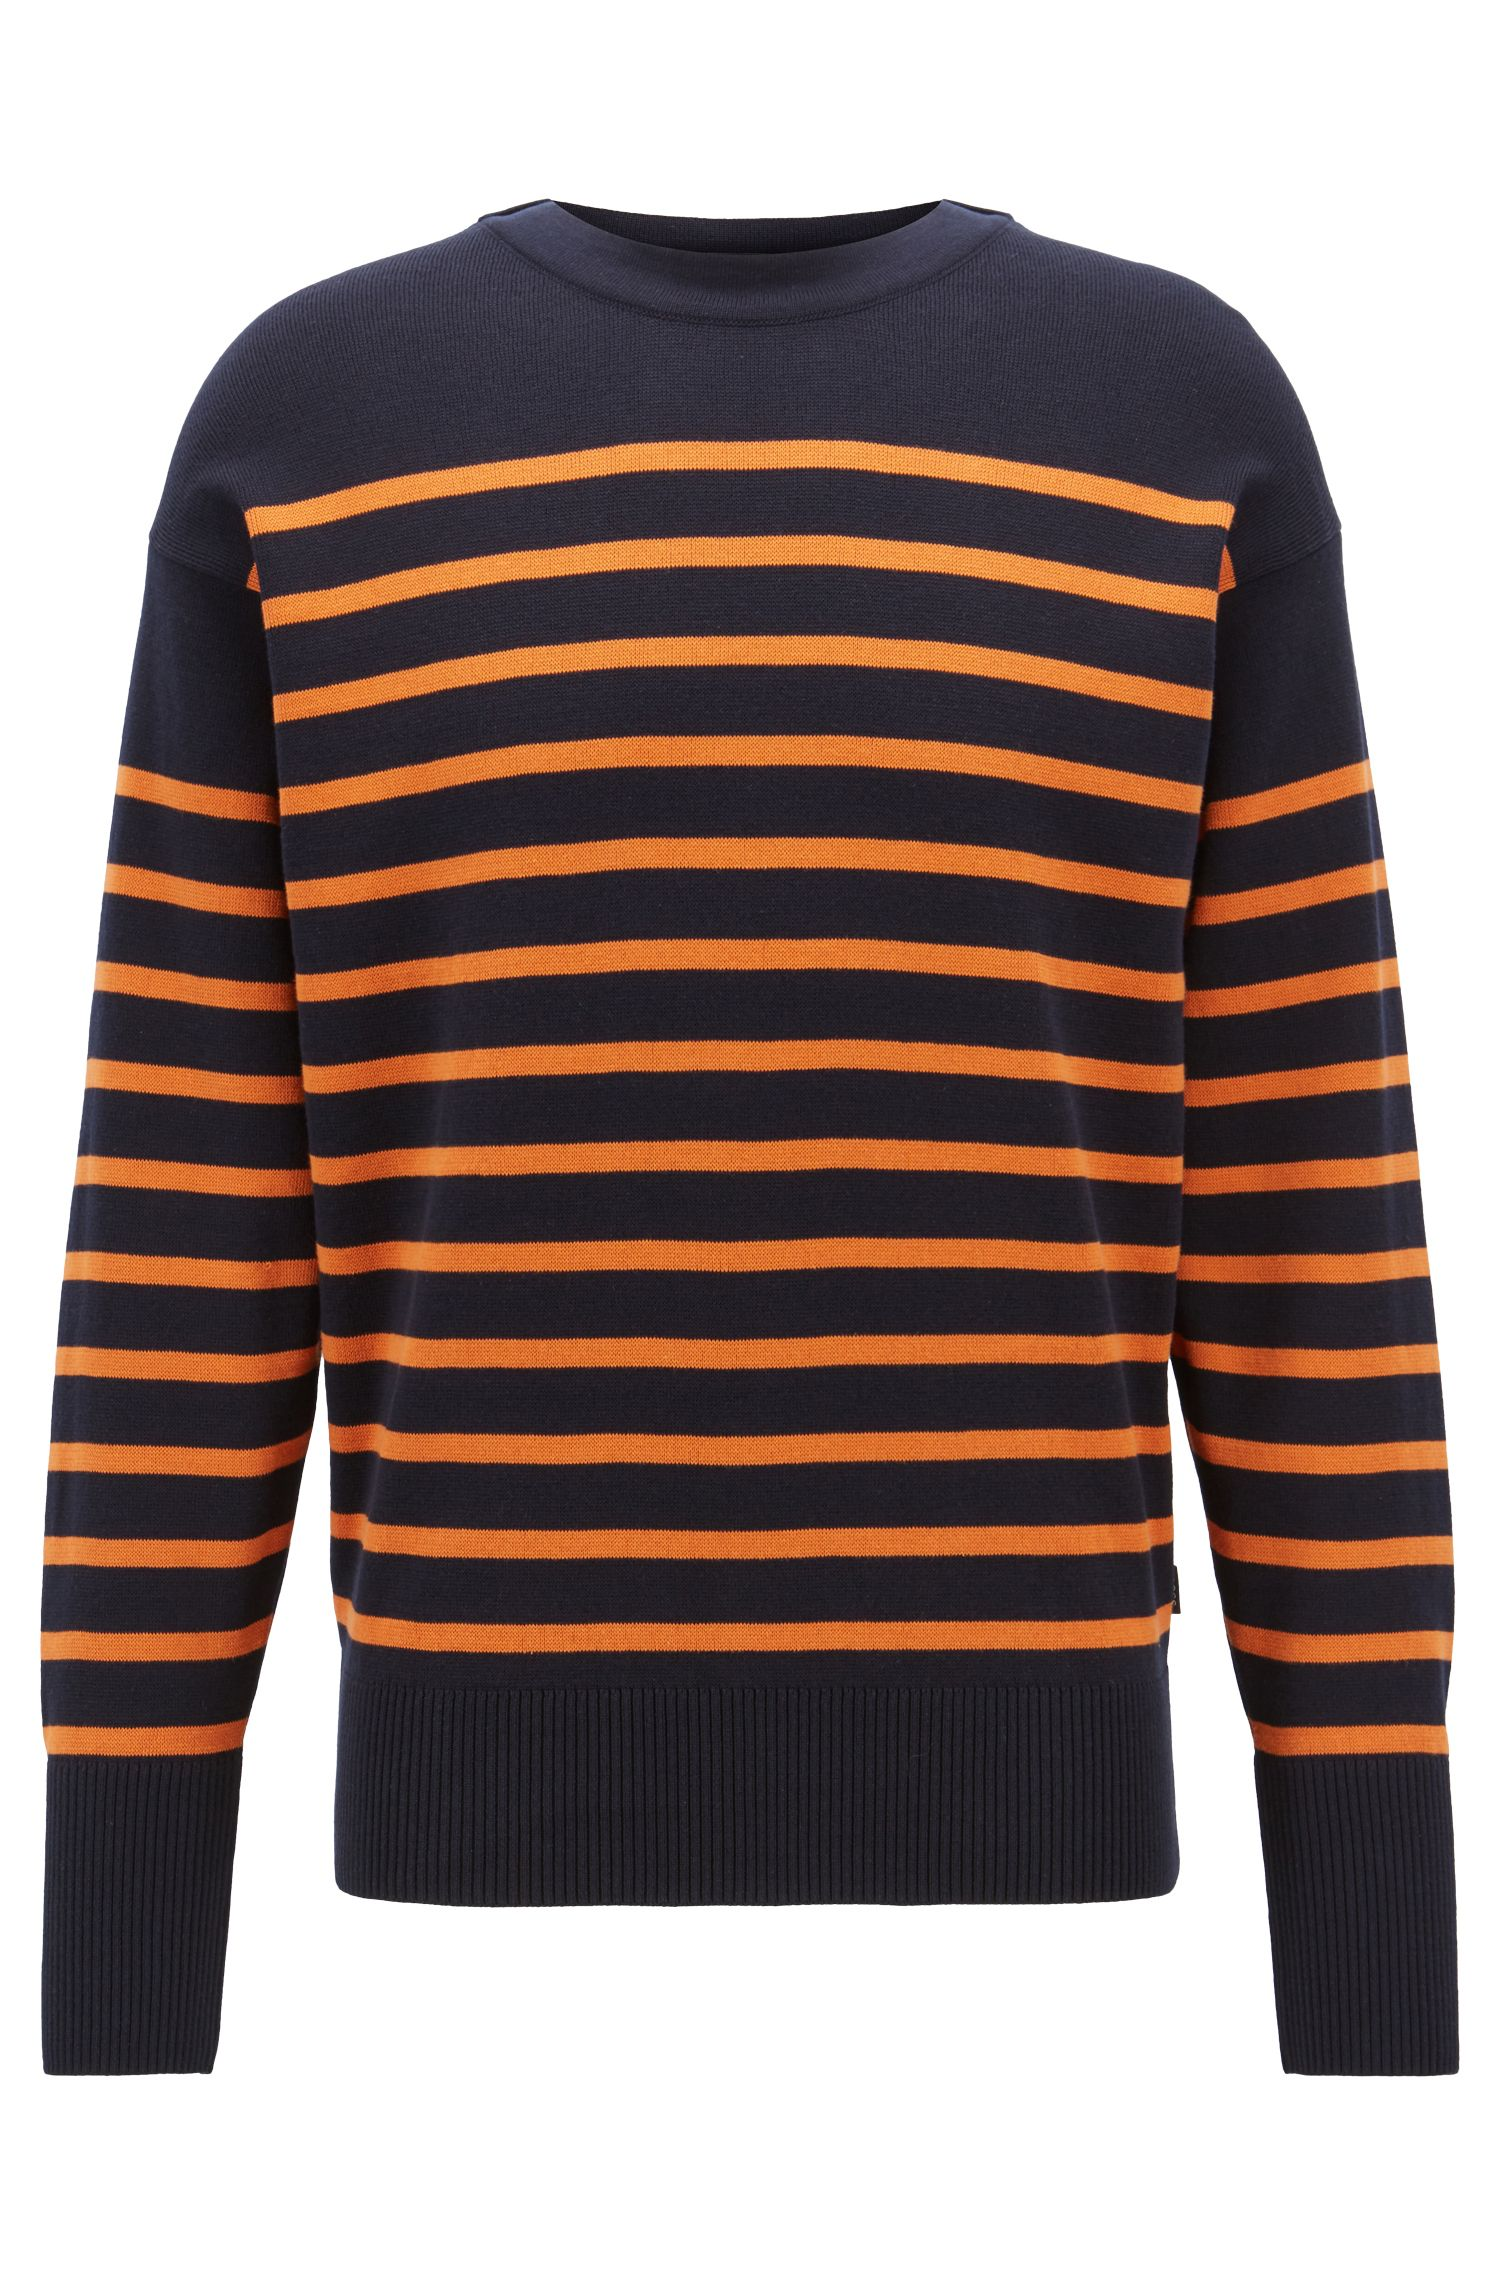 Striped cotton sweater with overlapping neckline, Orange